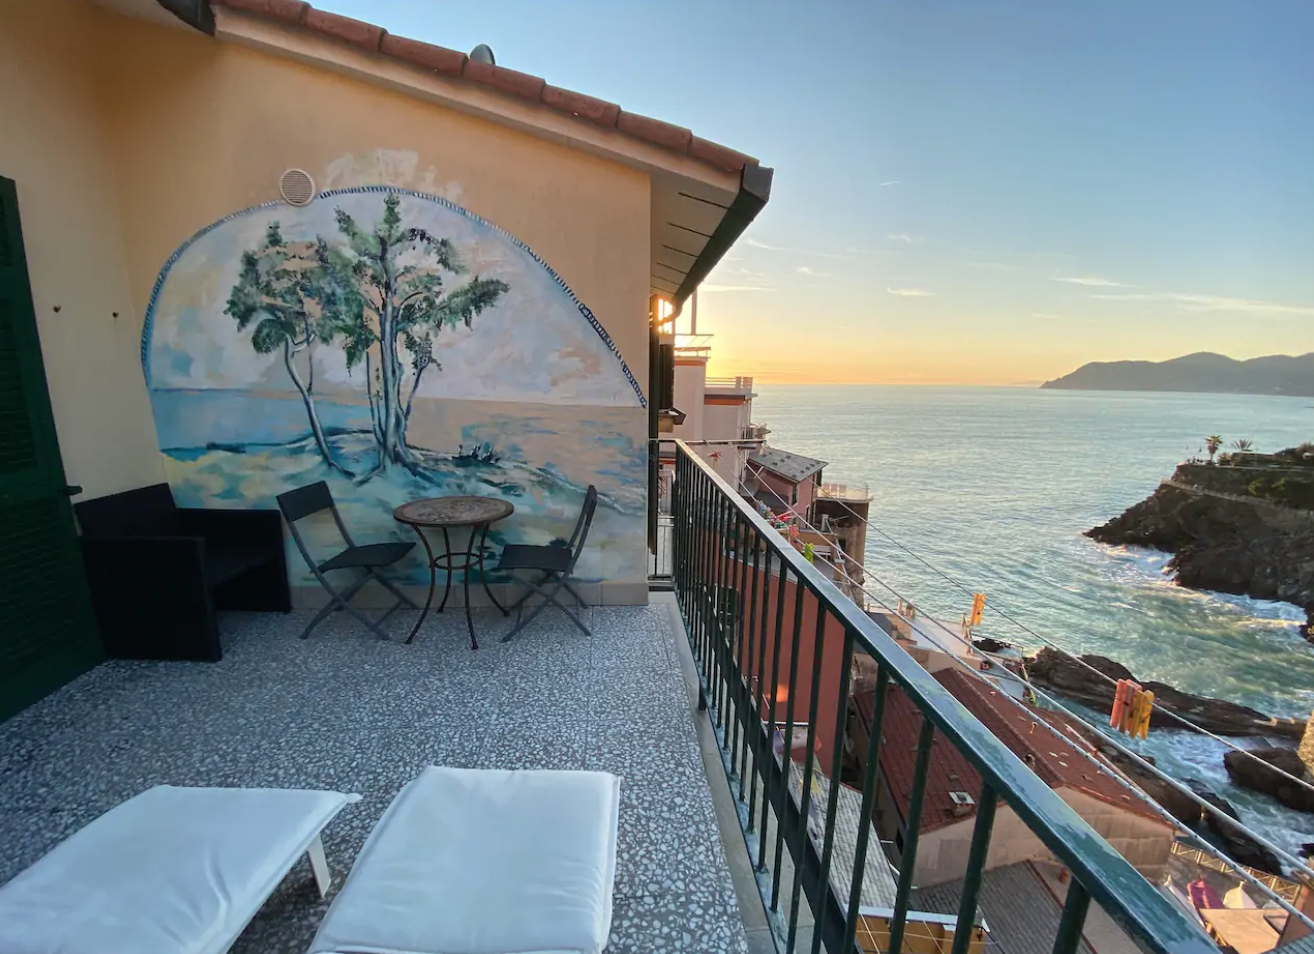 an airbnb in cinque terre which focusses on spirituality and meditation